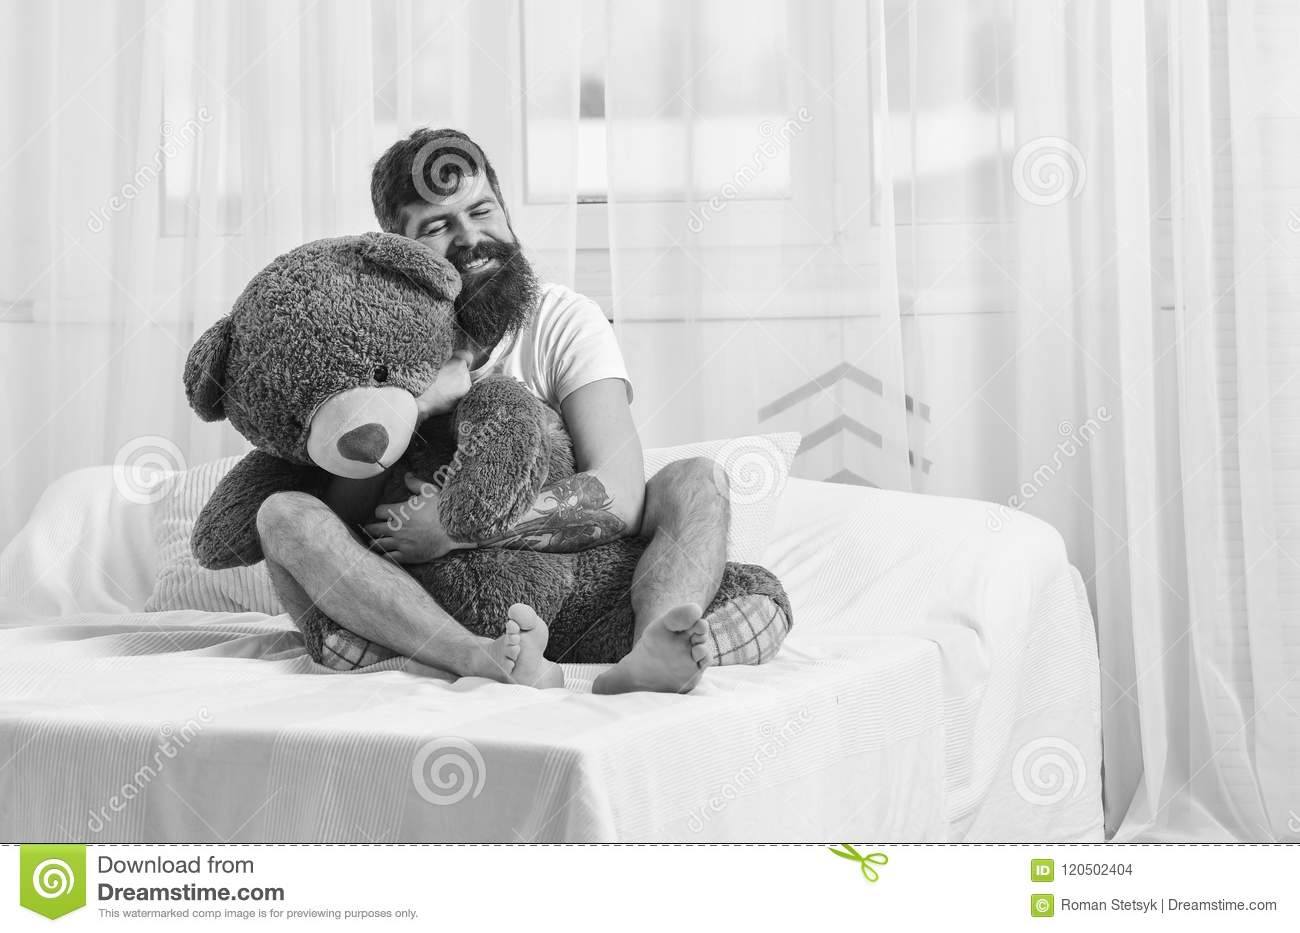 Never grow up concept. Guy on happy face hugs giant teddy bear. Man sits on bed and hugs big toy, white curtains on